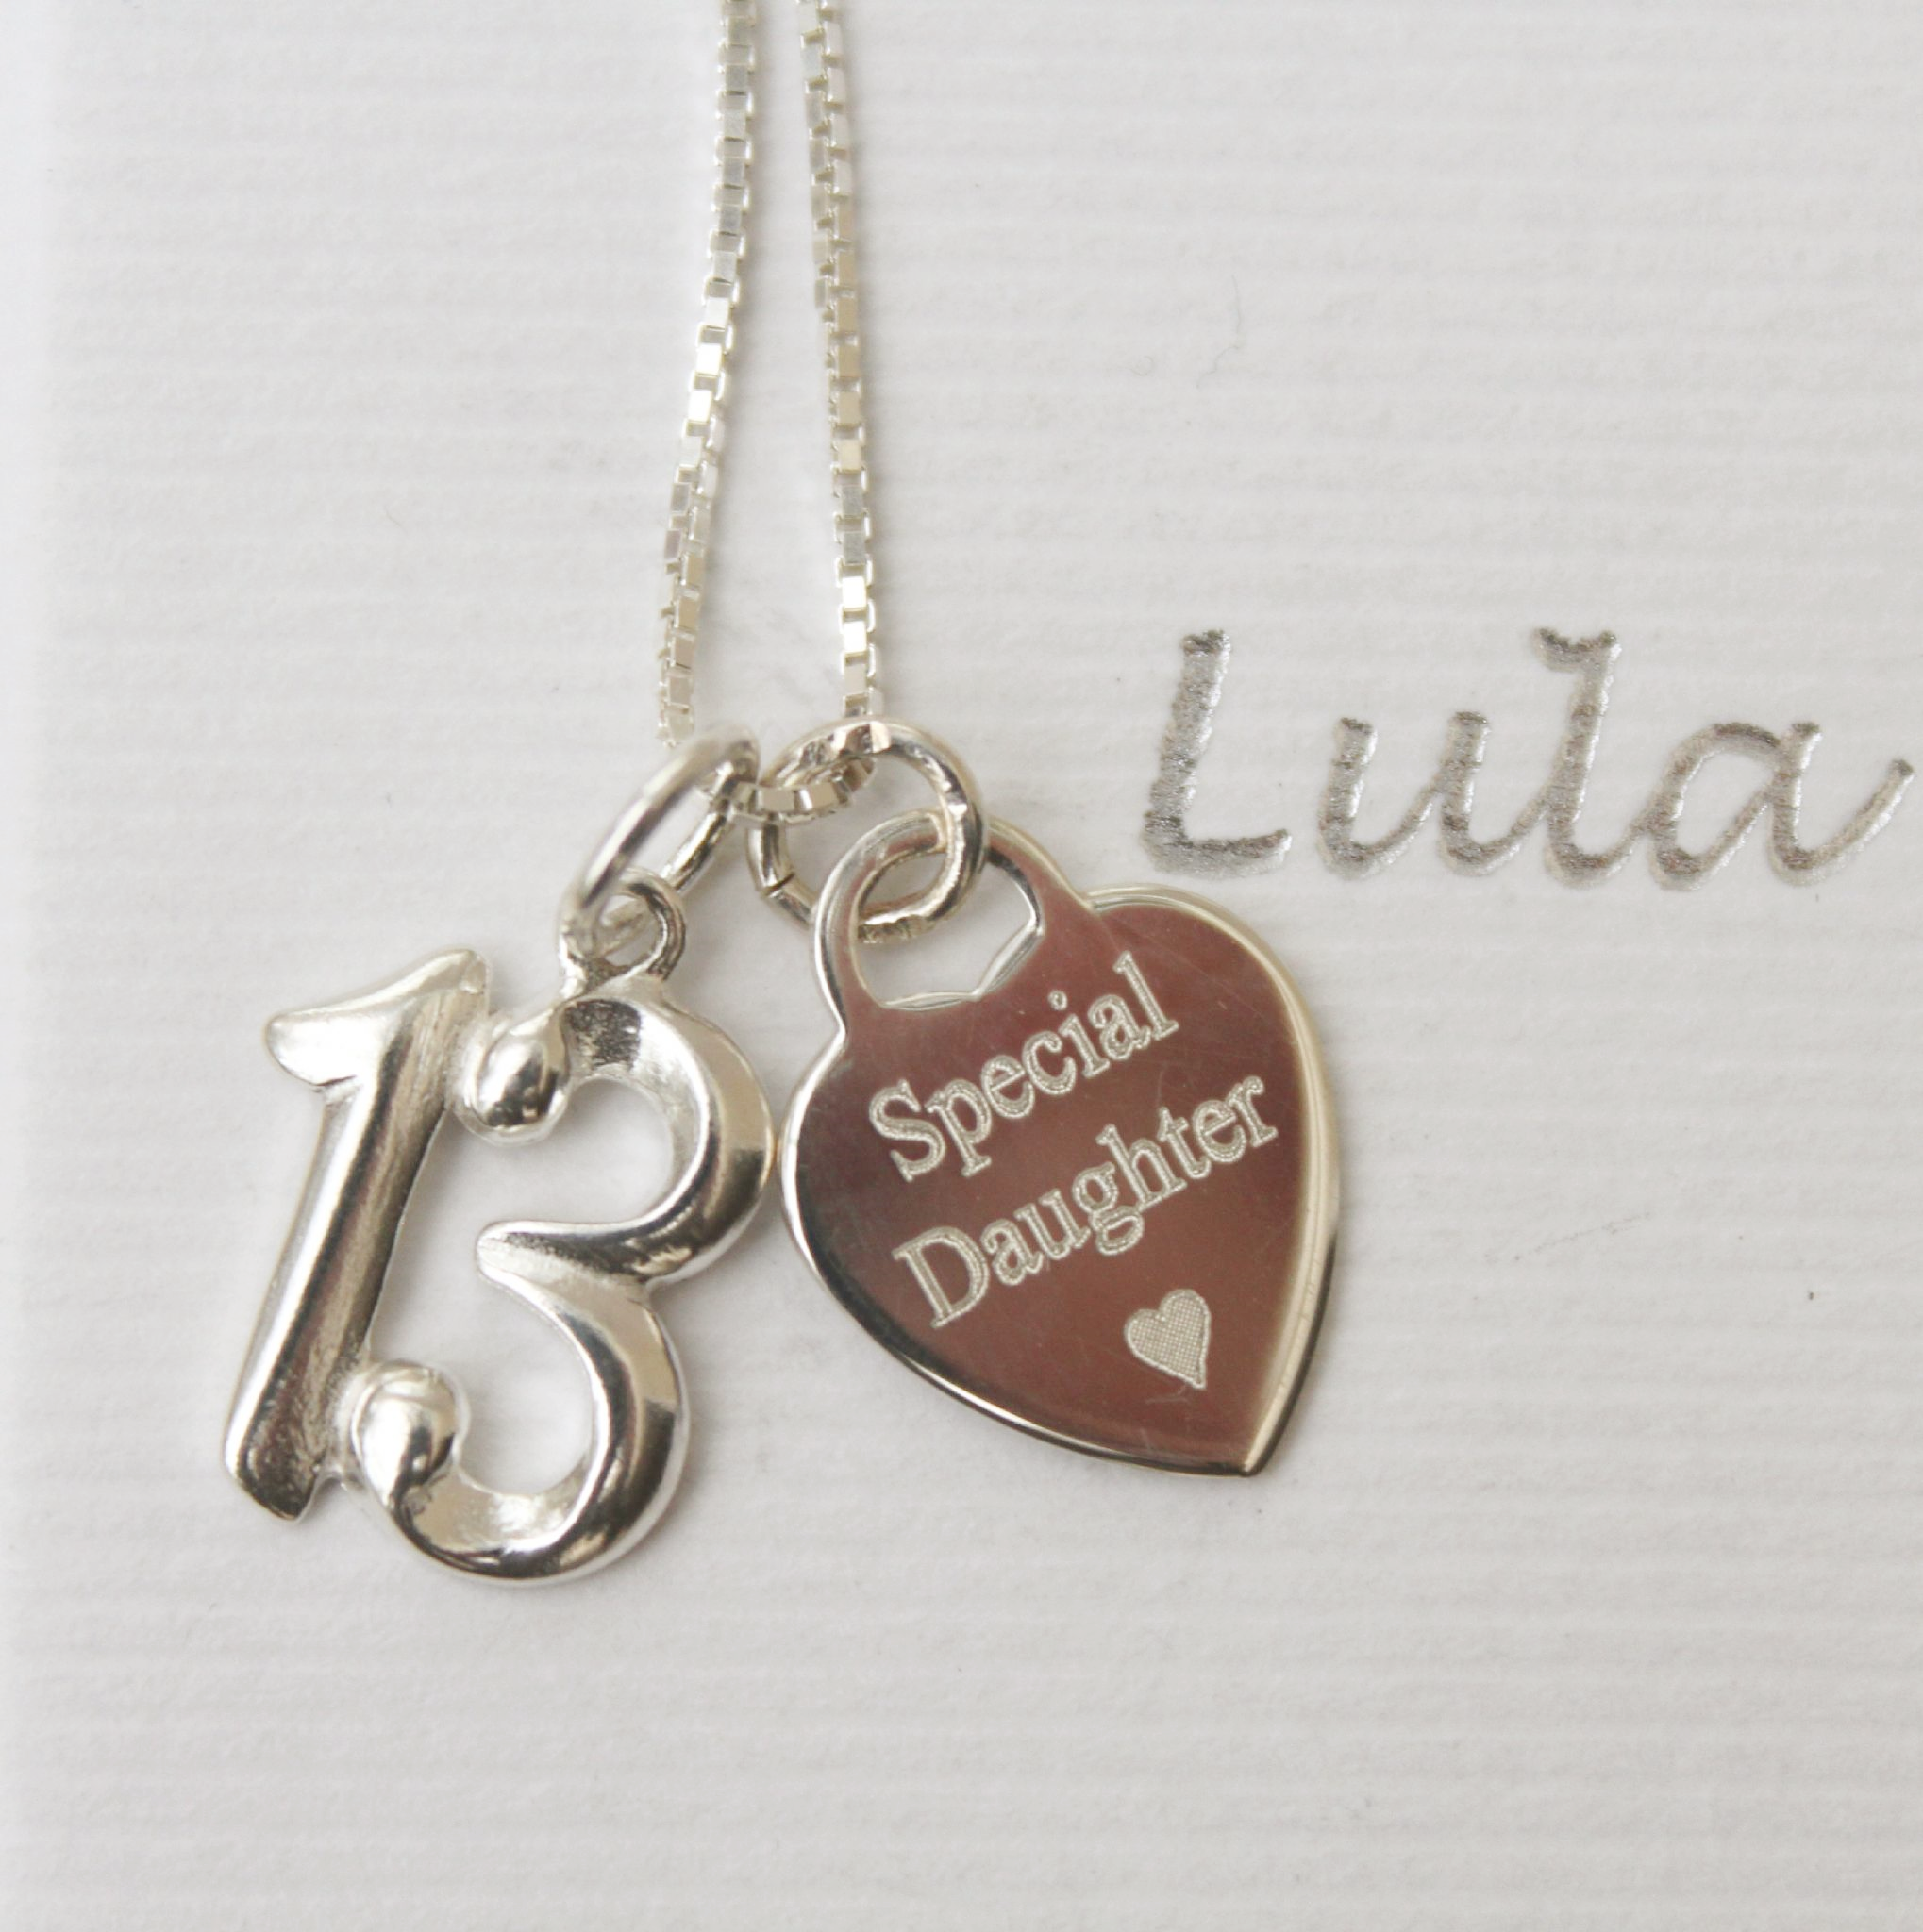 13th Birthday Silver Jewellery Gift For A Daughter Free Engraving 32807 P